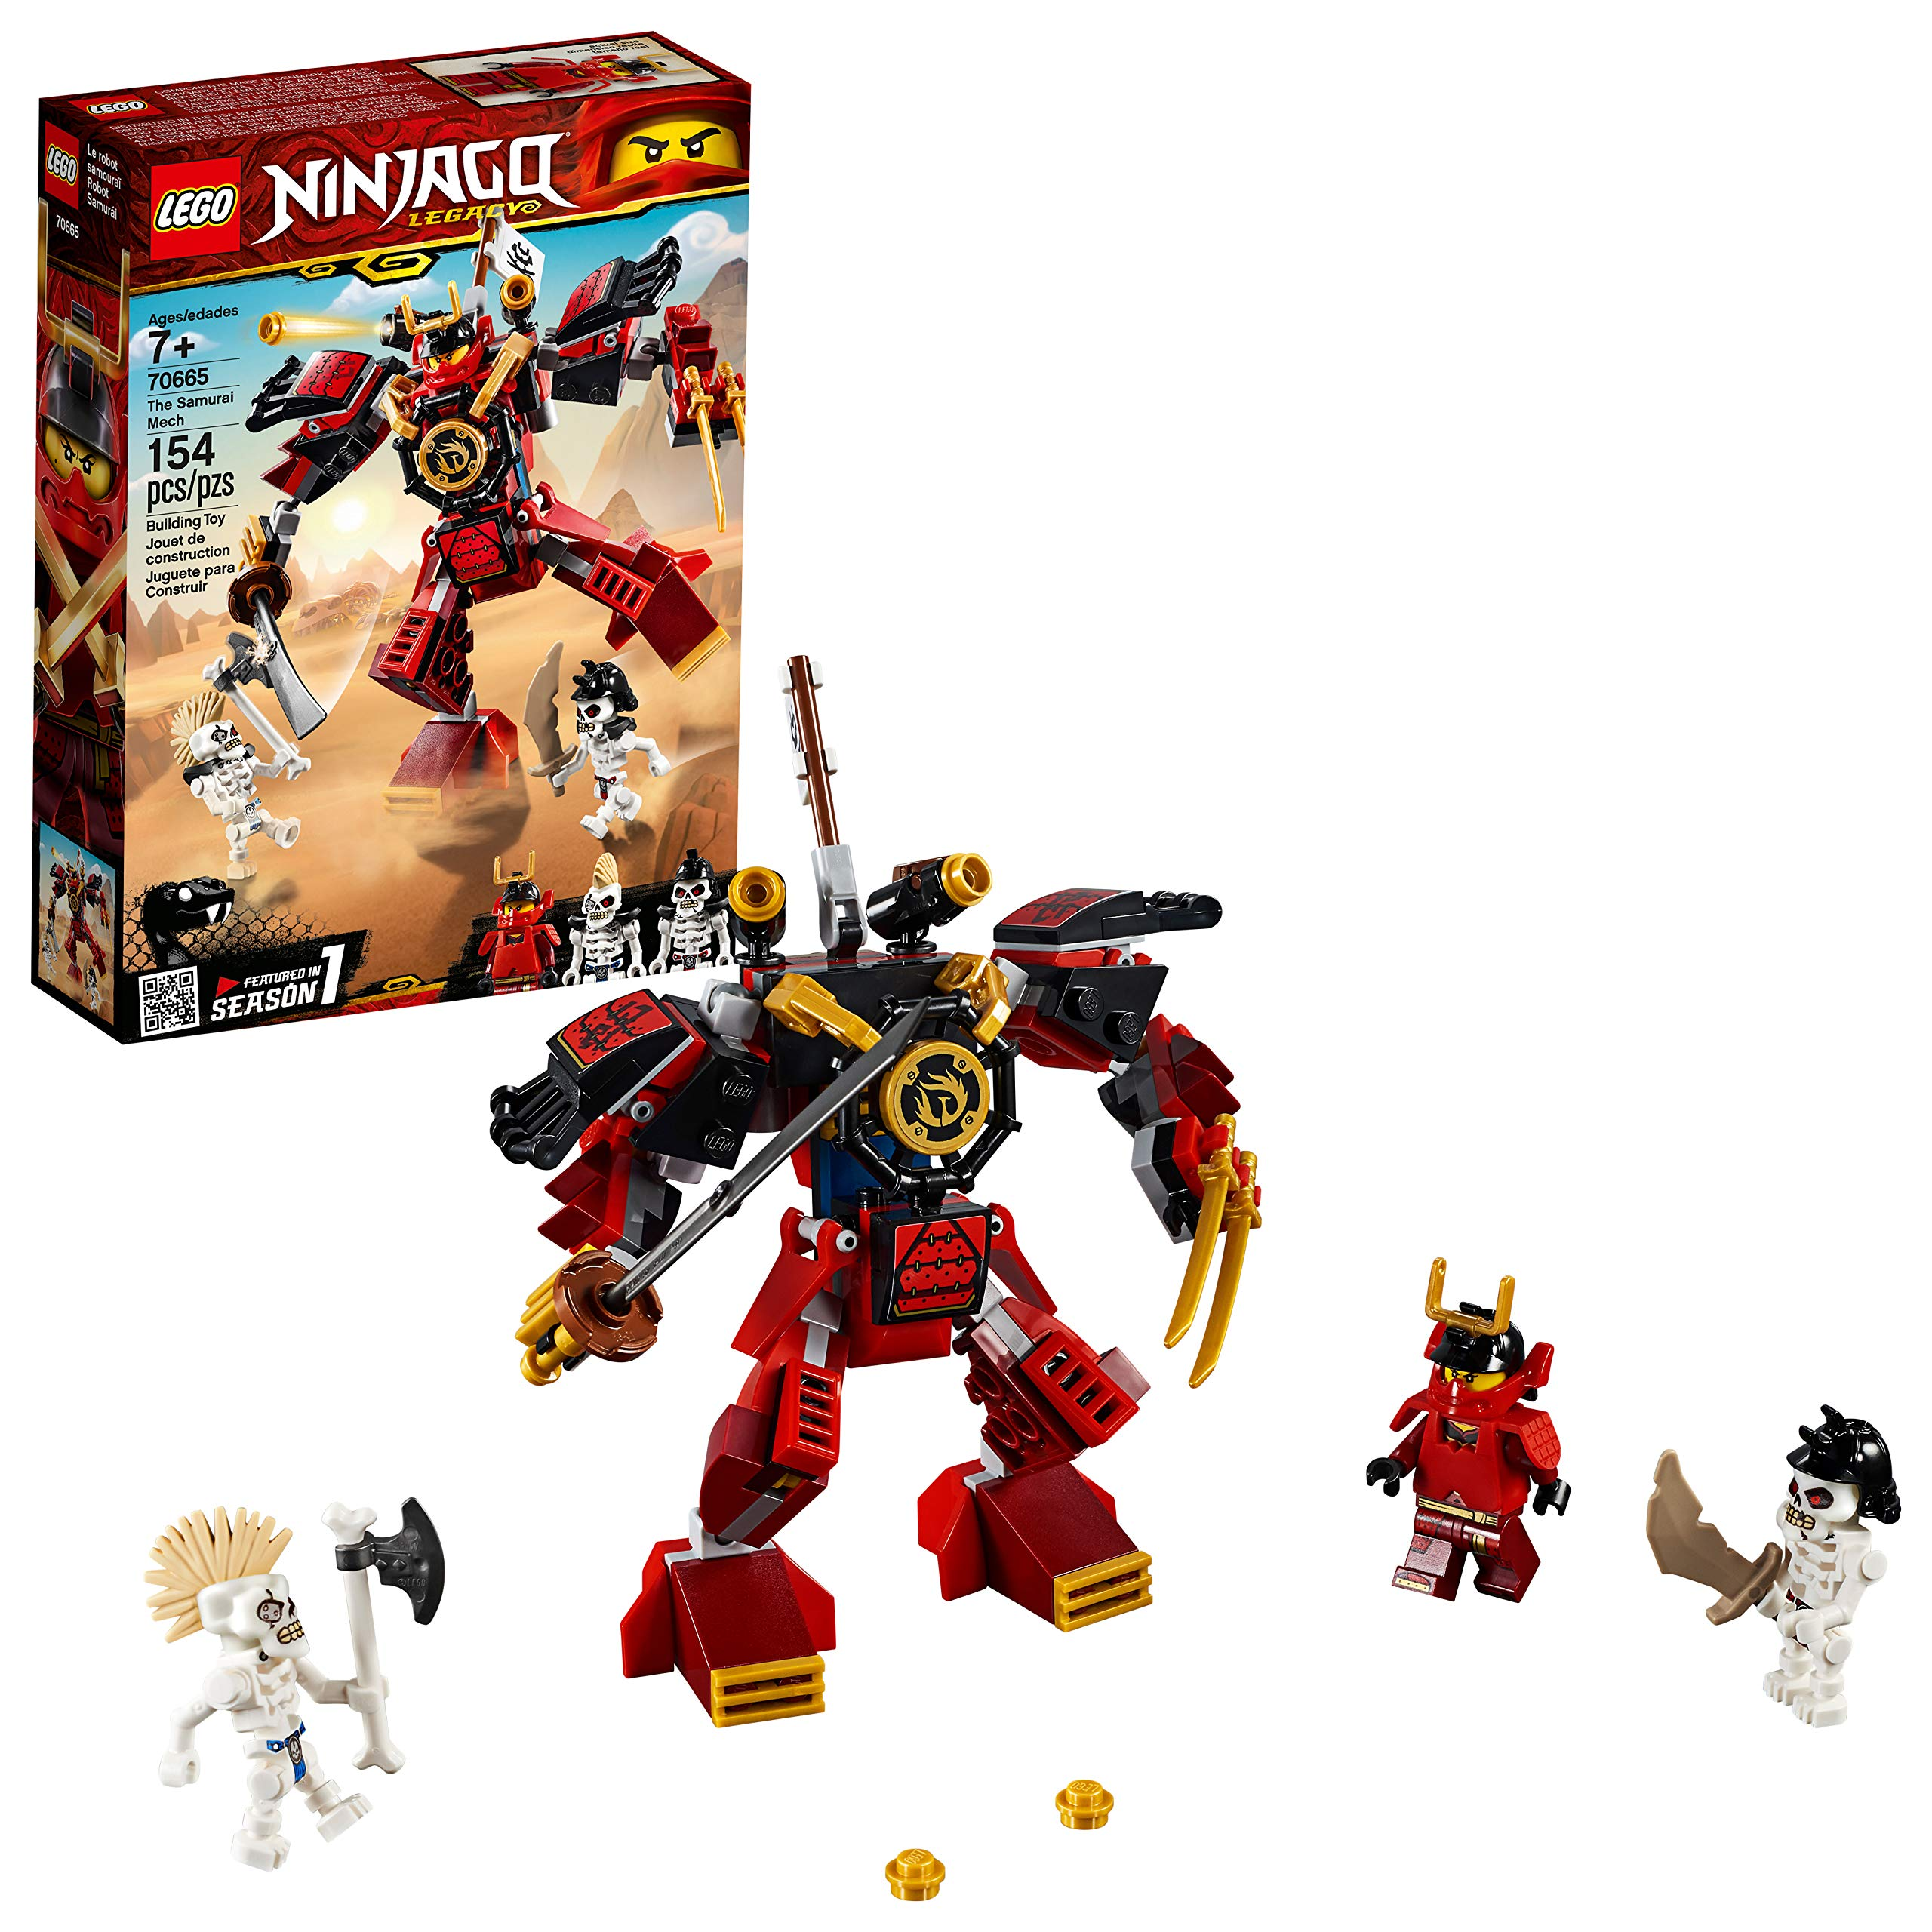 Lego Ninjago Legacy Samurai Mech 70665 Toy Mech Building Kit Comes With Ninjago Minifigures Stud Shooters And A Toy Sword For Imaginative Play 154 Pieces Buy Online At Best Price In Uae